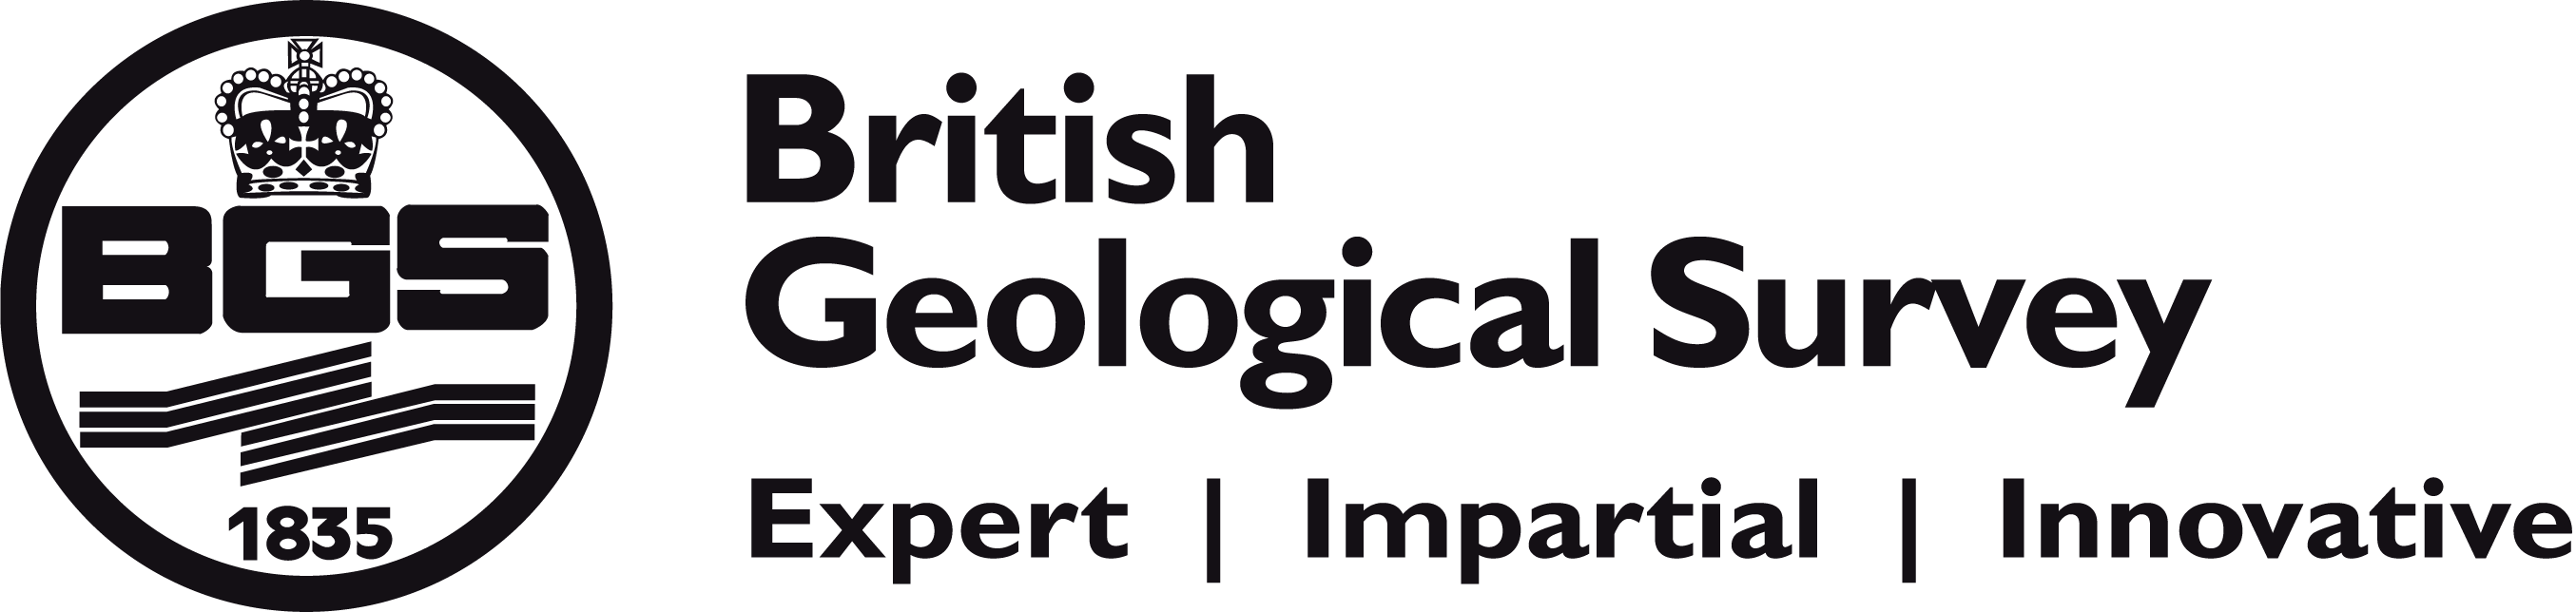 Silver Sponsor: British Geological Survey